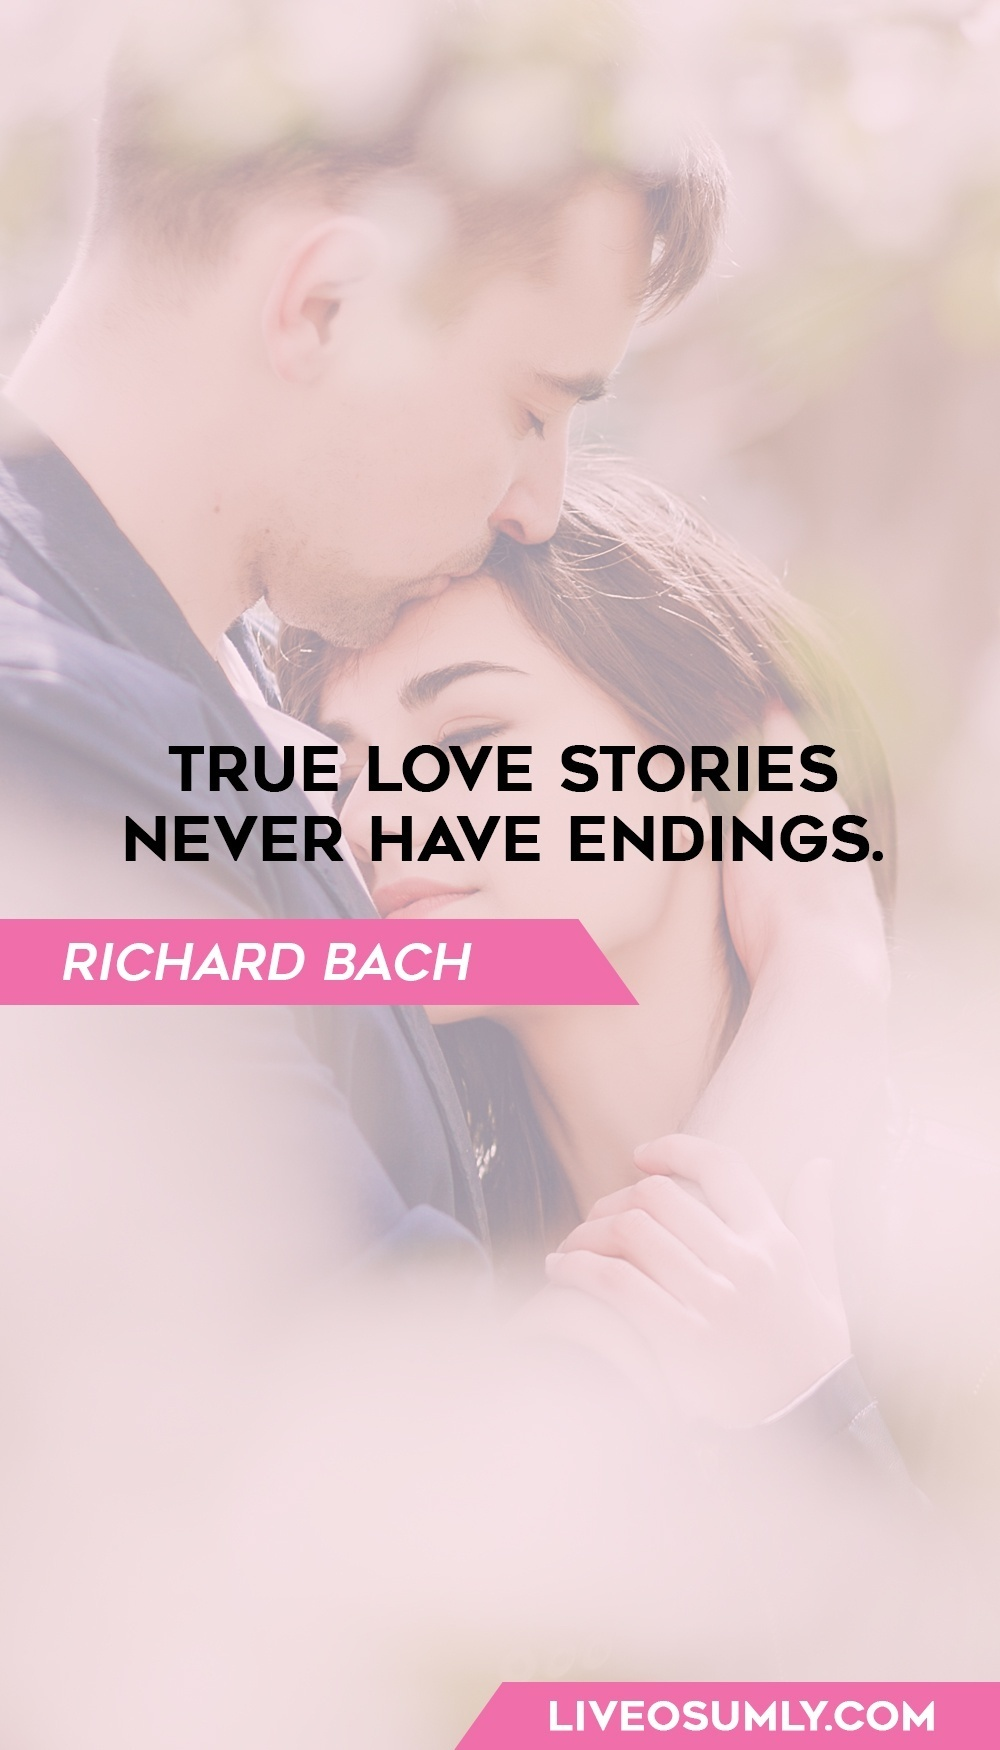 Richard Bach Quotes on V Day